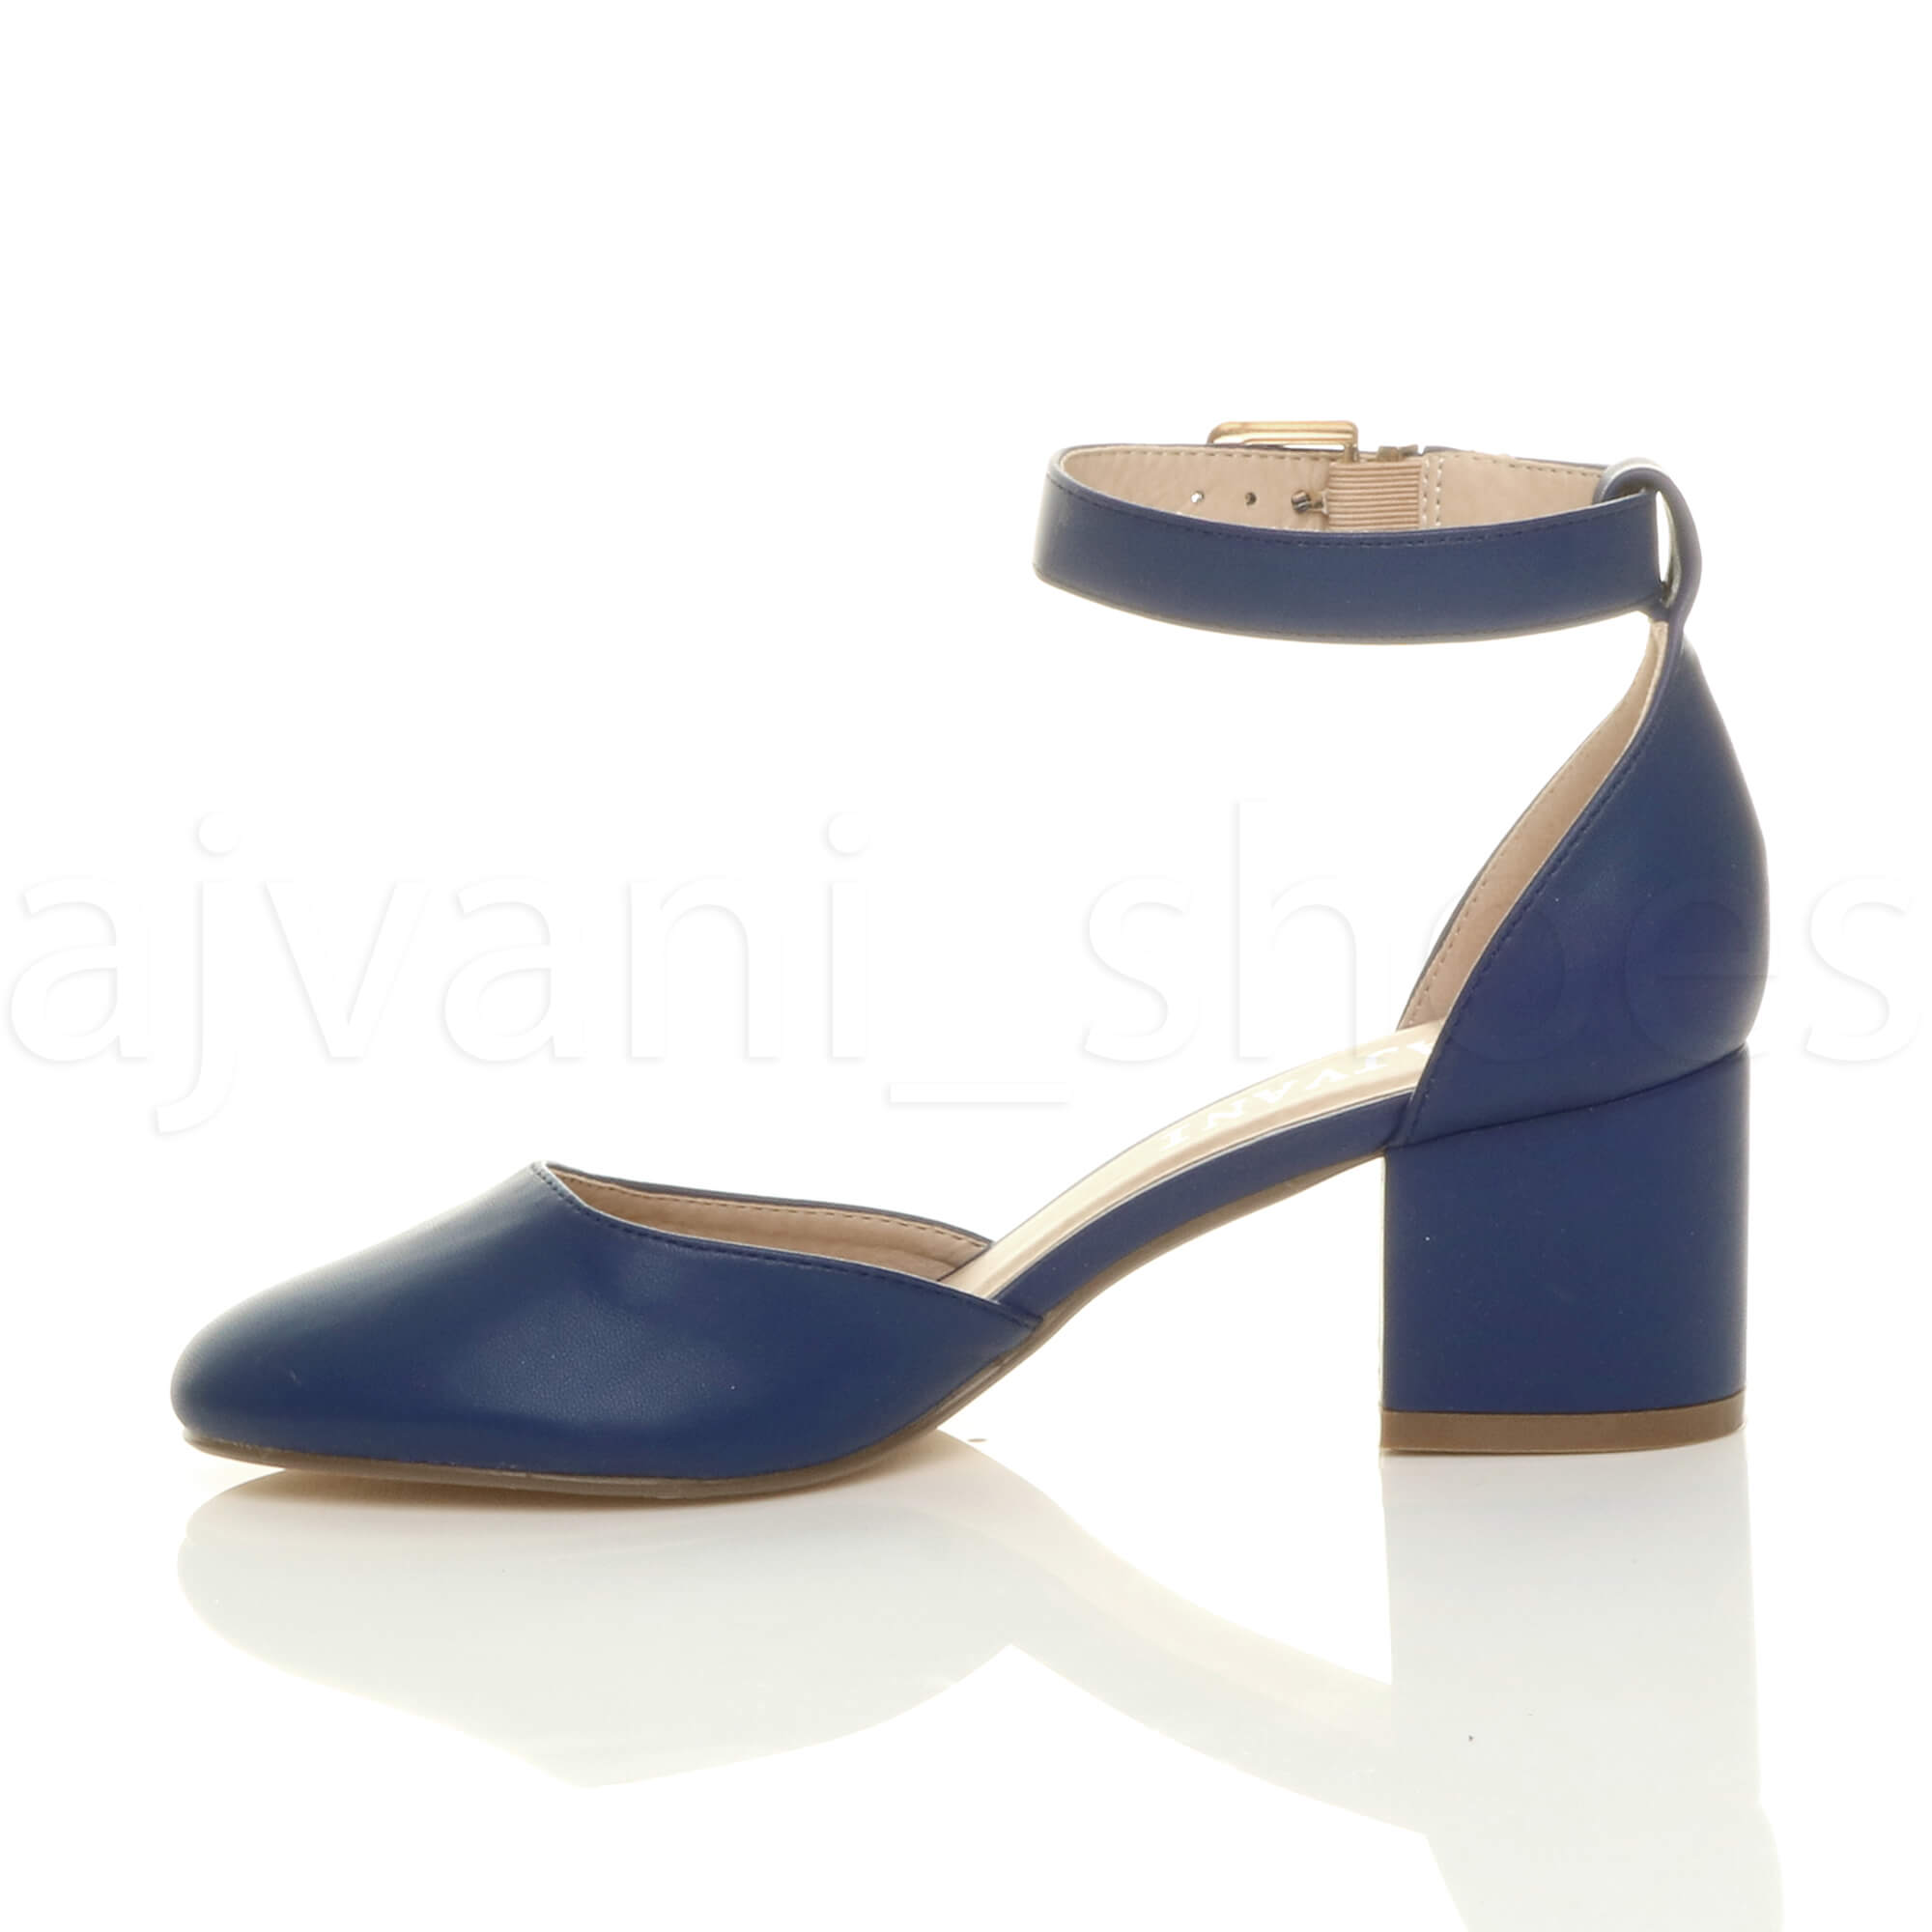 WOMENS-LADIES-LOW-MID-BLOCK-HEEL-ANKLE-STRAP-MARY-JANE-COURT-SHOES-SANDALS-SIZE thumbnail 92